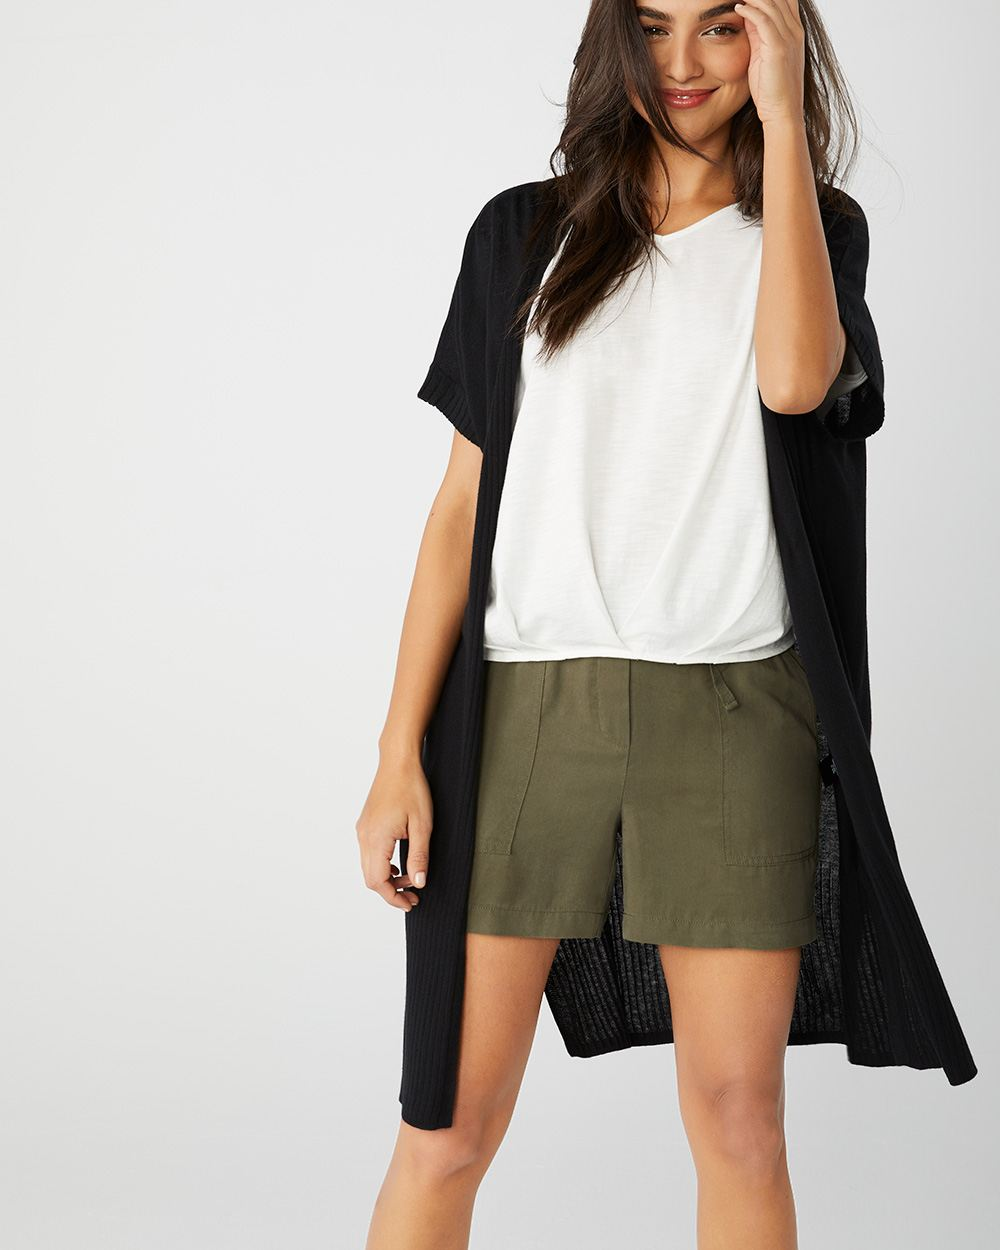 Loose-fit short sleeve cashmere-like cardigan